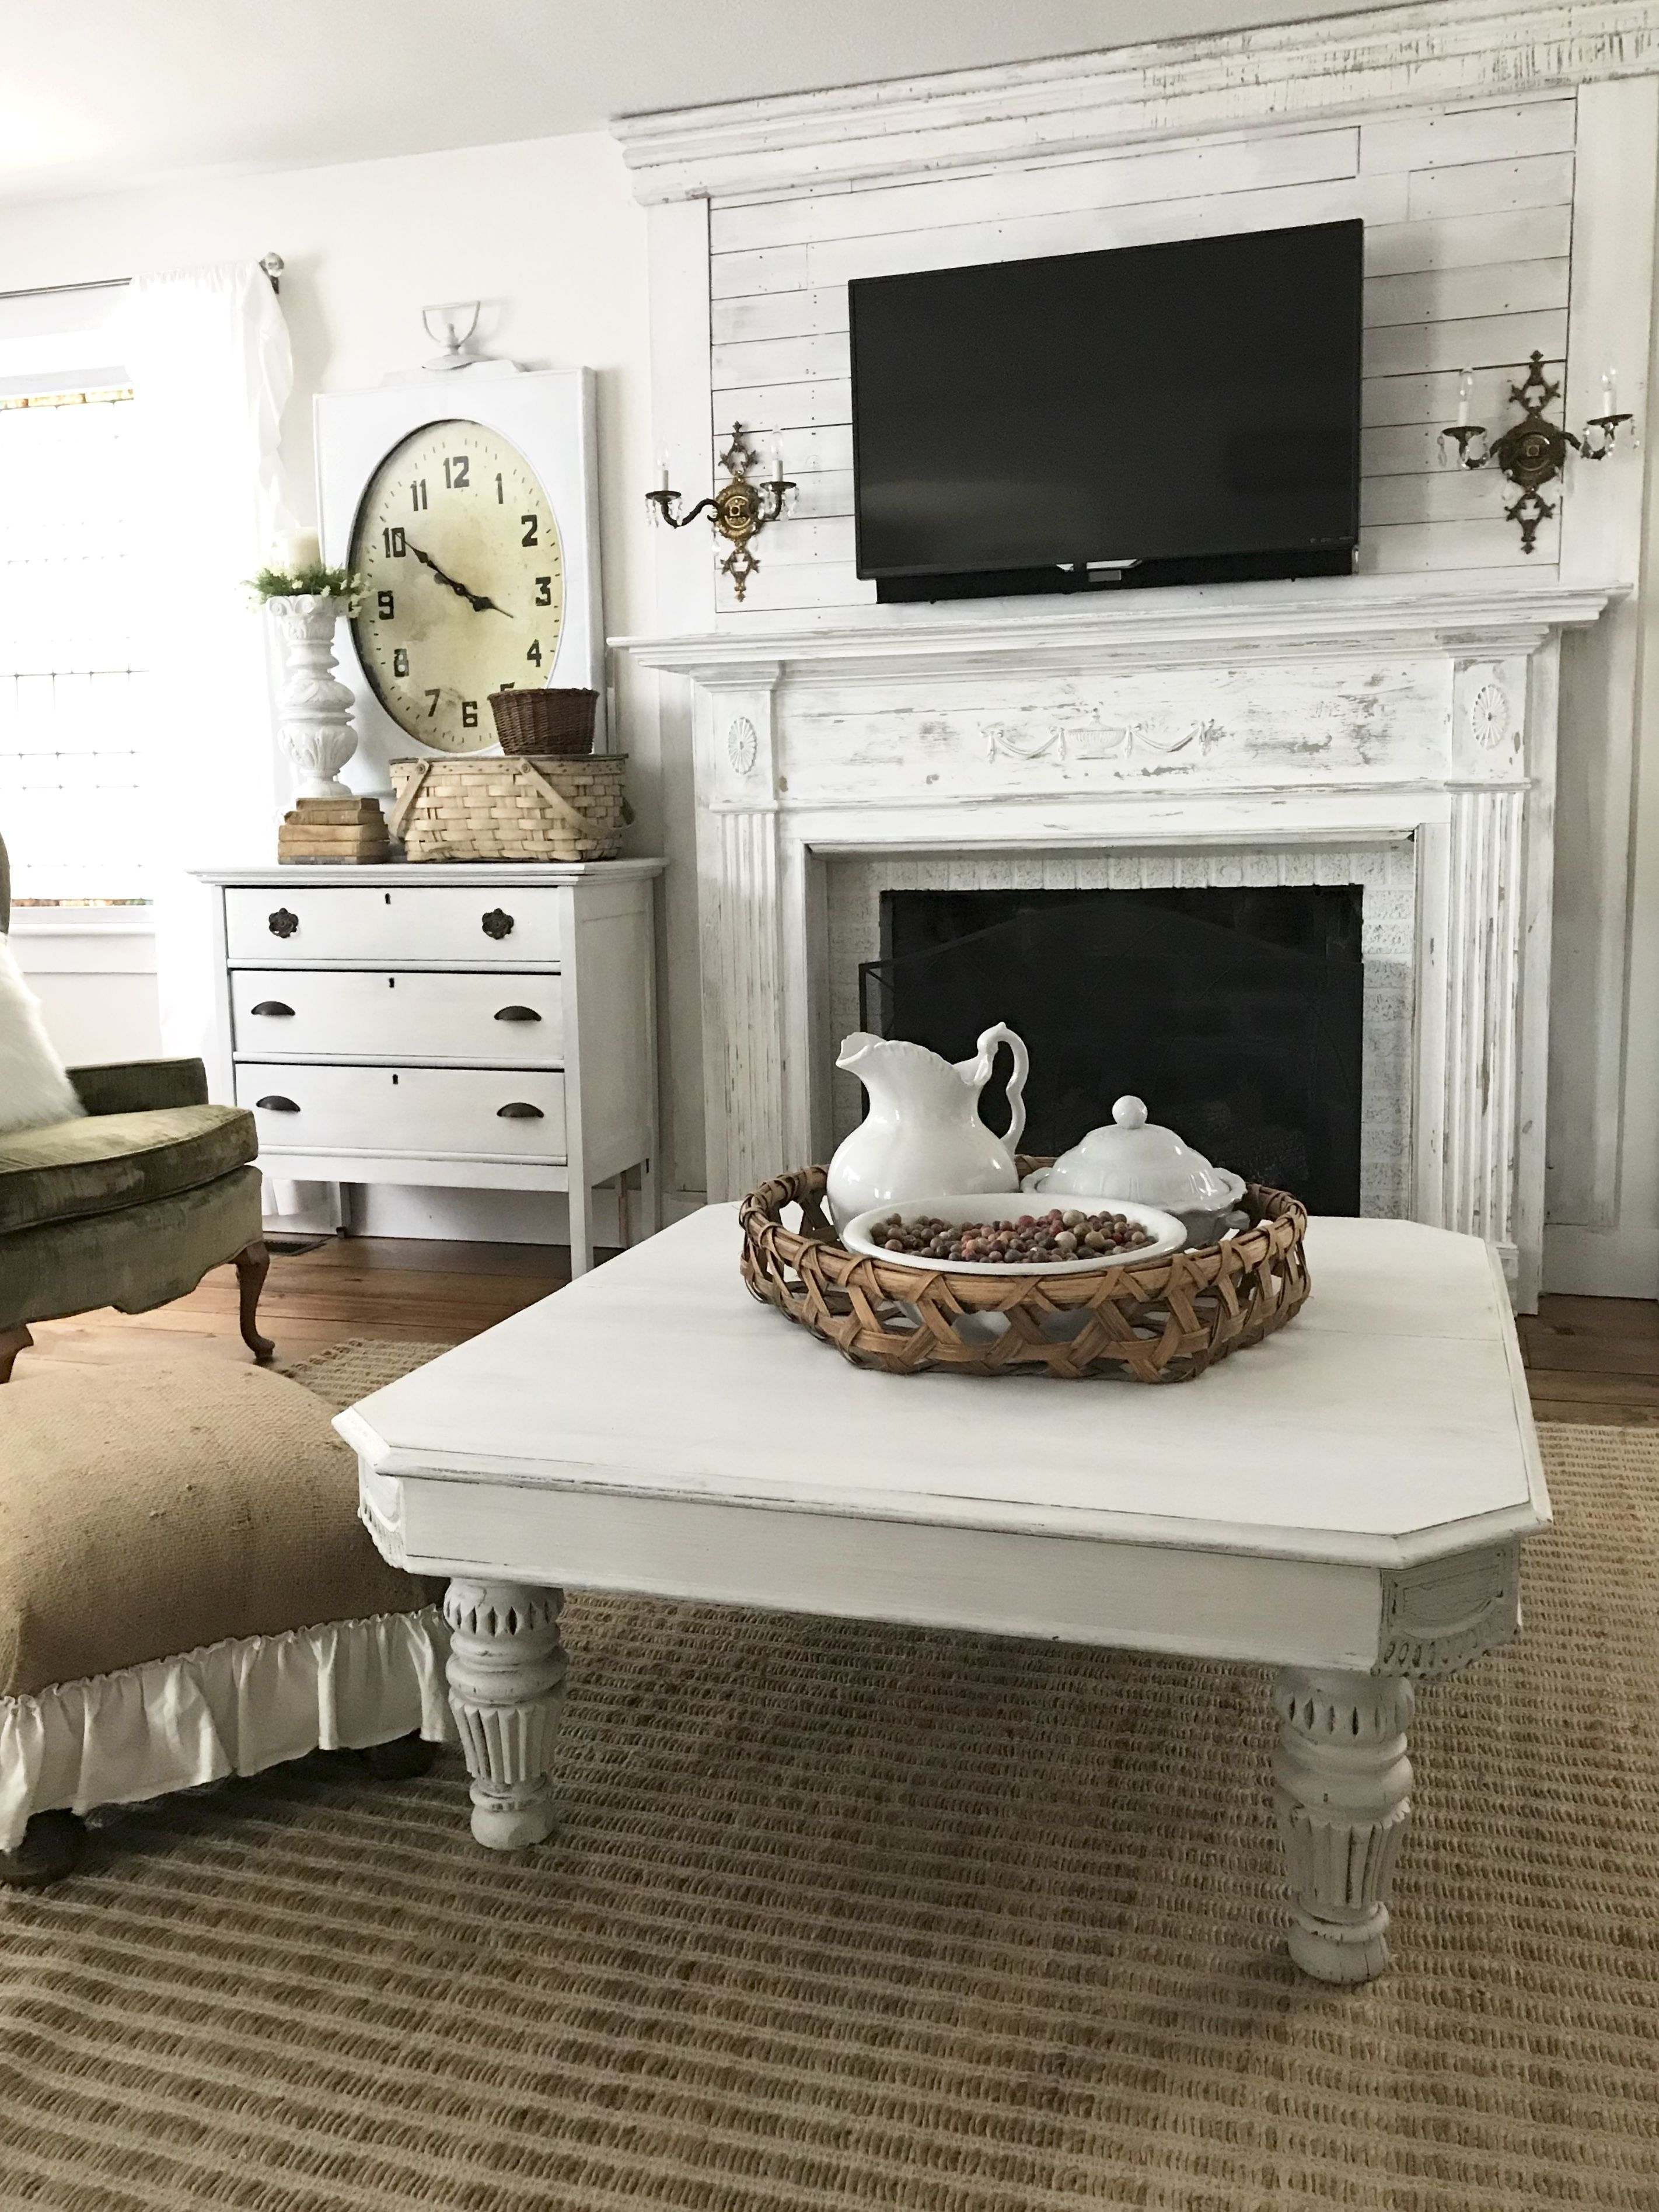 New coffee table in family room house on winchester farmhouse